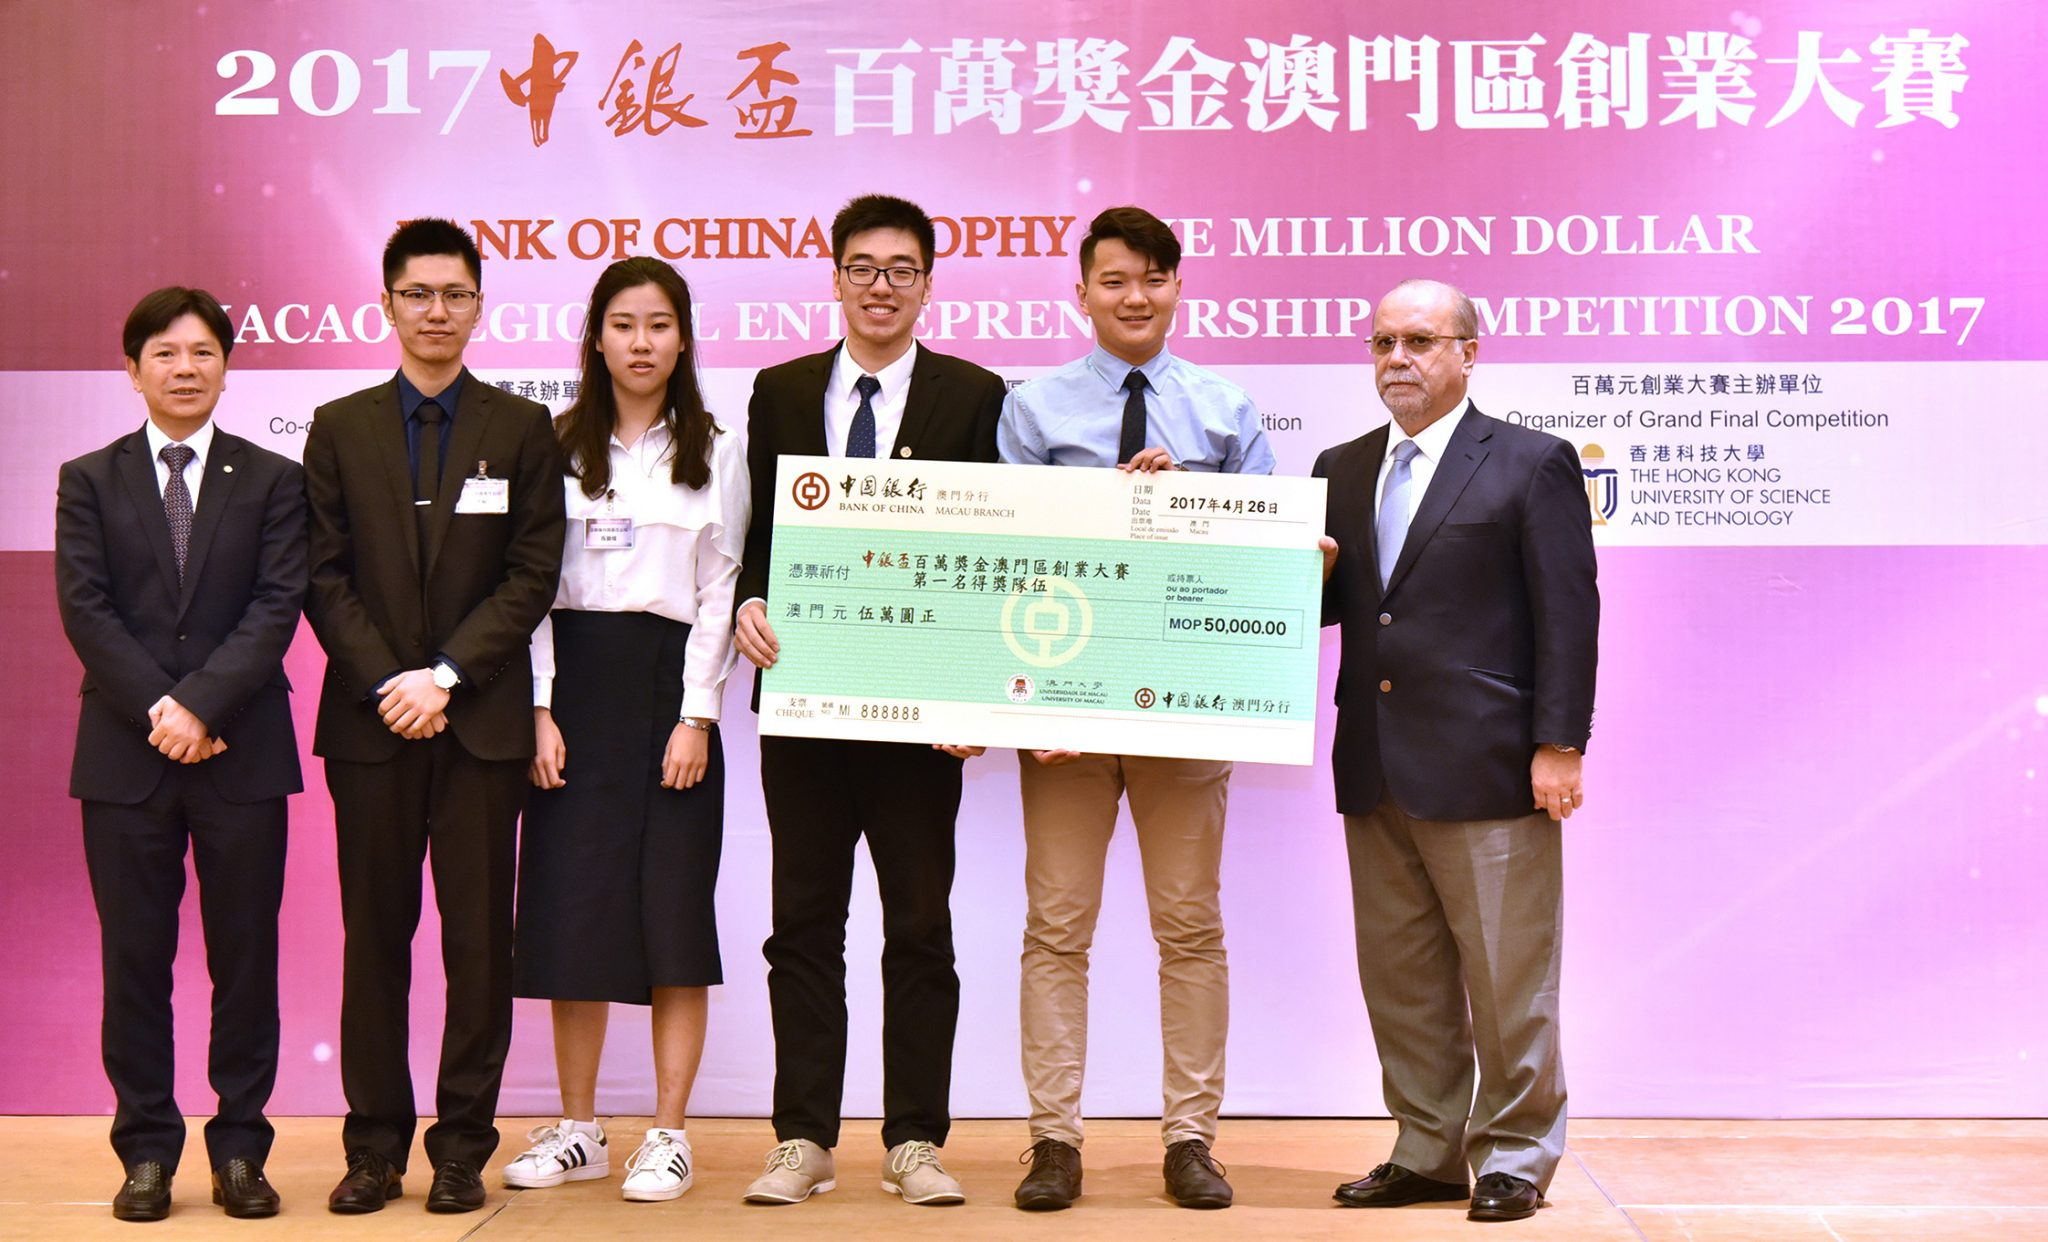 A student team wins the championship at the Bank of China Trophy One Million Dollar Macao Regional Entrepreneurship Competition, with their product 'Golden Wound Dressing'